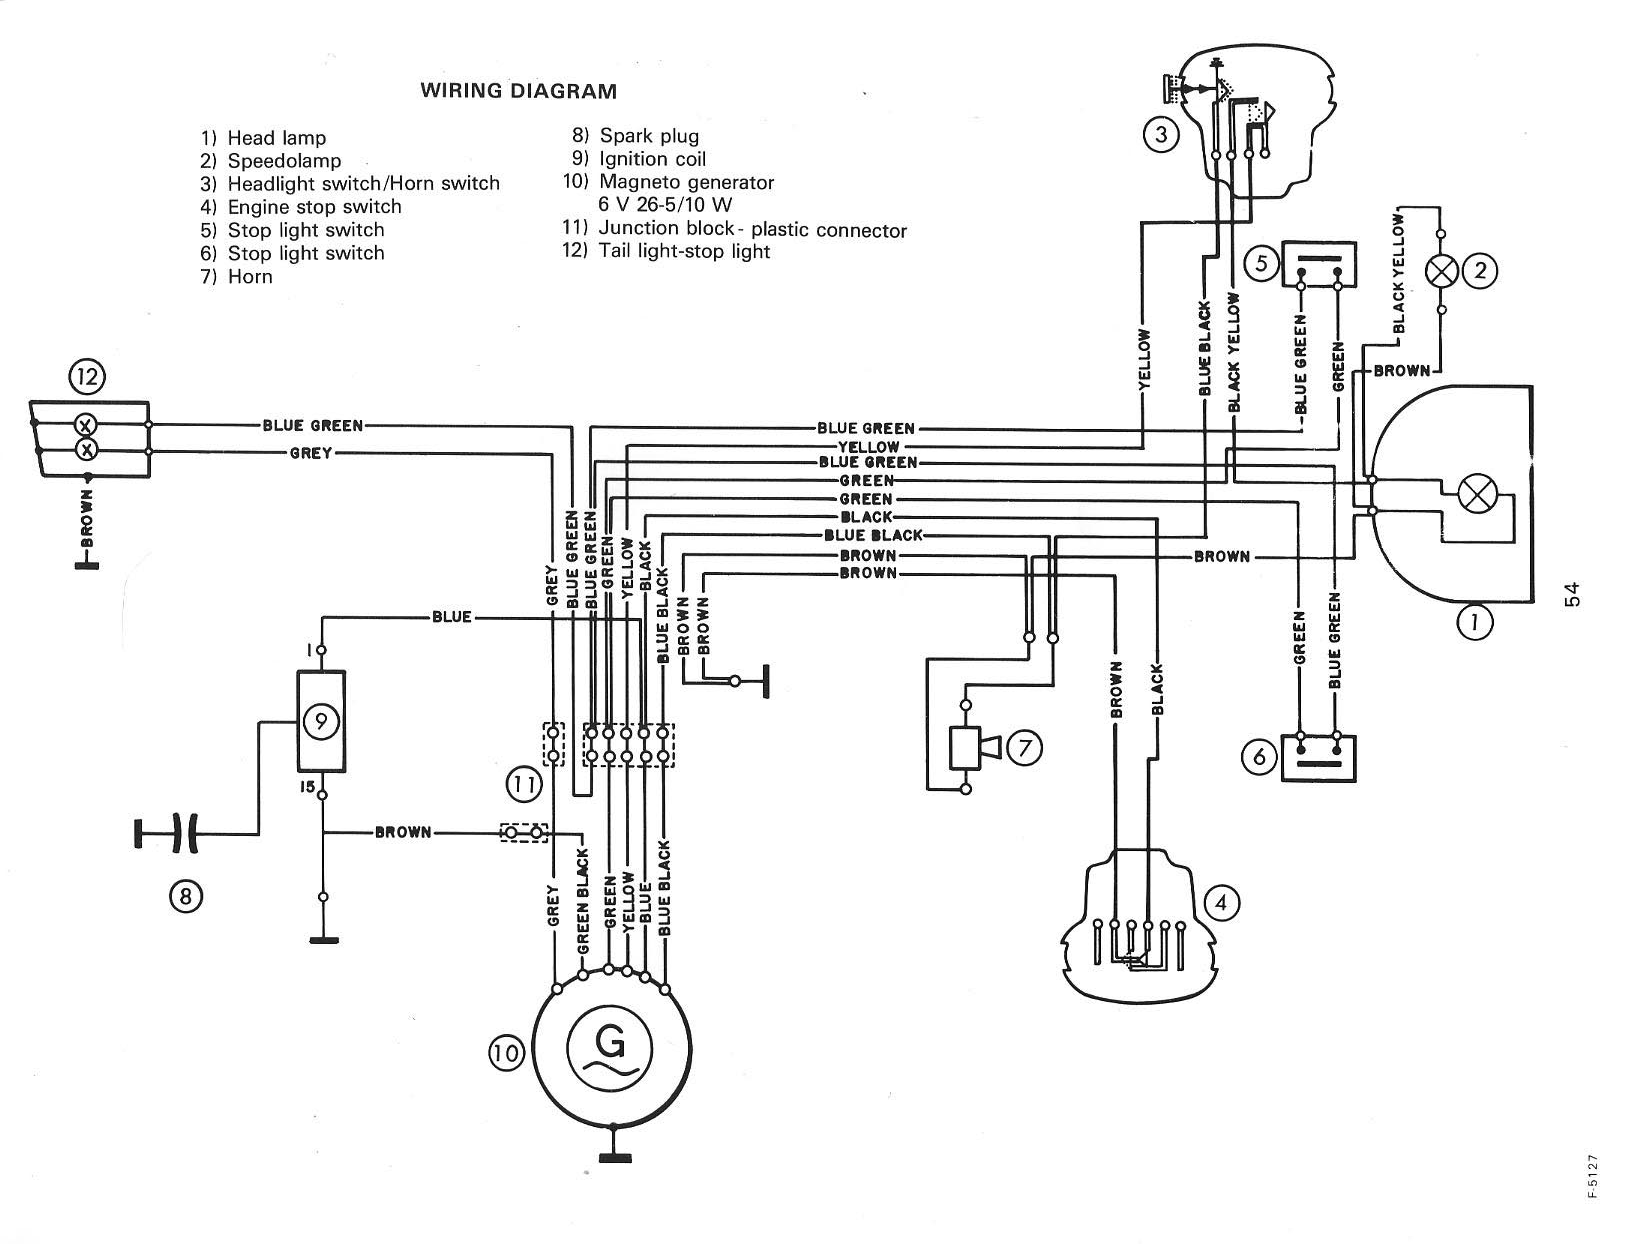 Puch Murray wiring diagram.png